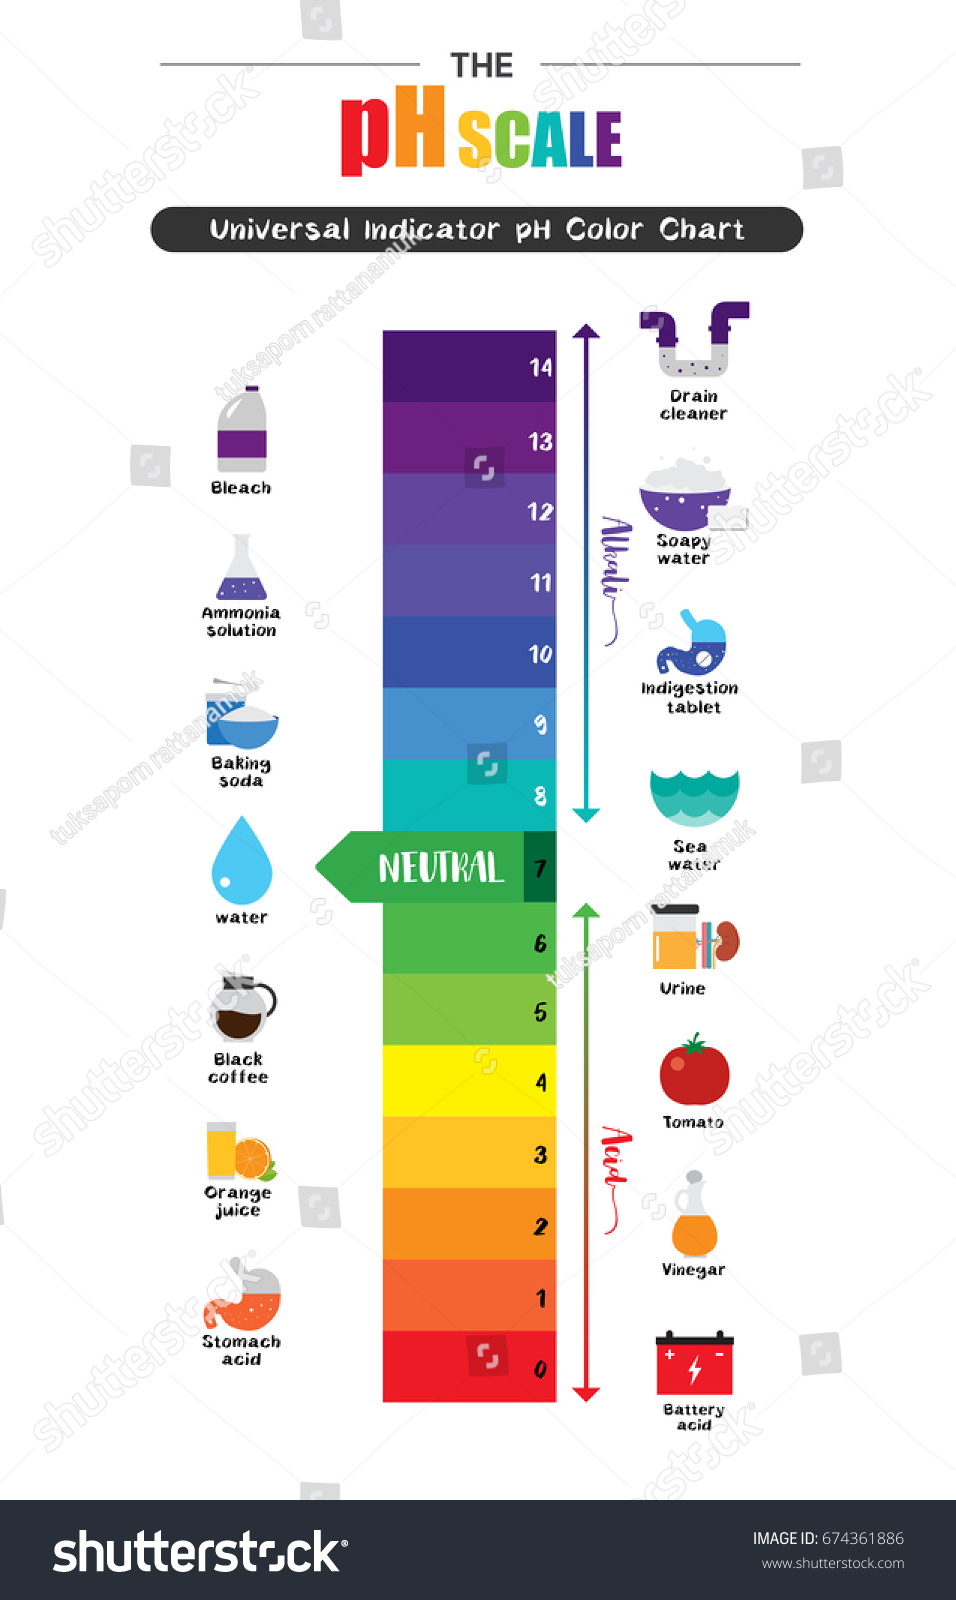 Ph scale universal indicator ph color stock vector 674361886 ph scale universal indicator ph color stock vector 674361886 shutterstock nvjuhfo Images